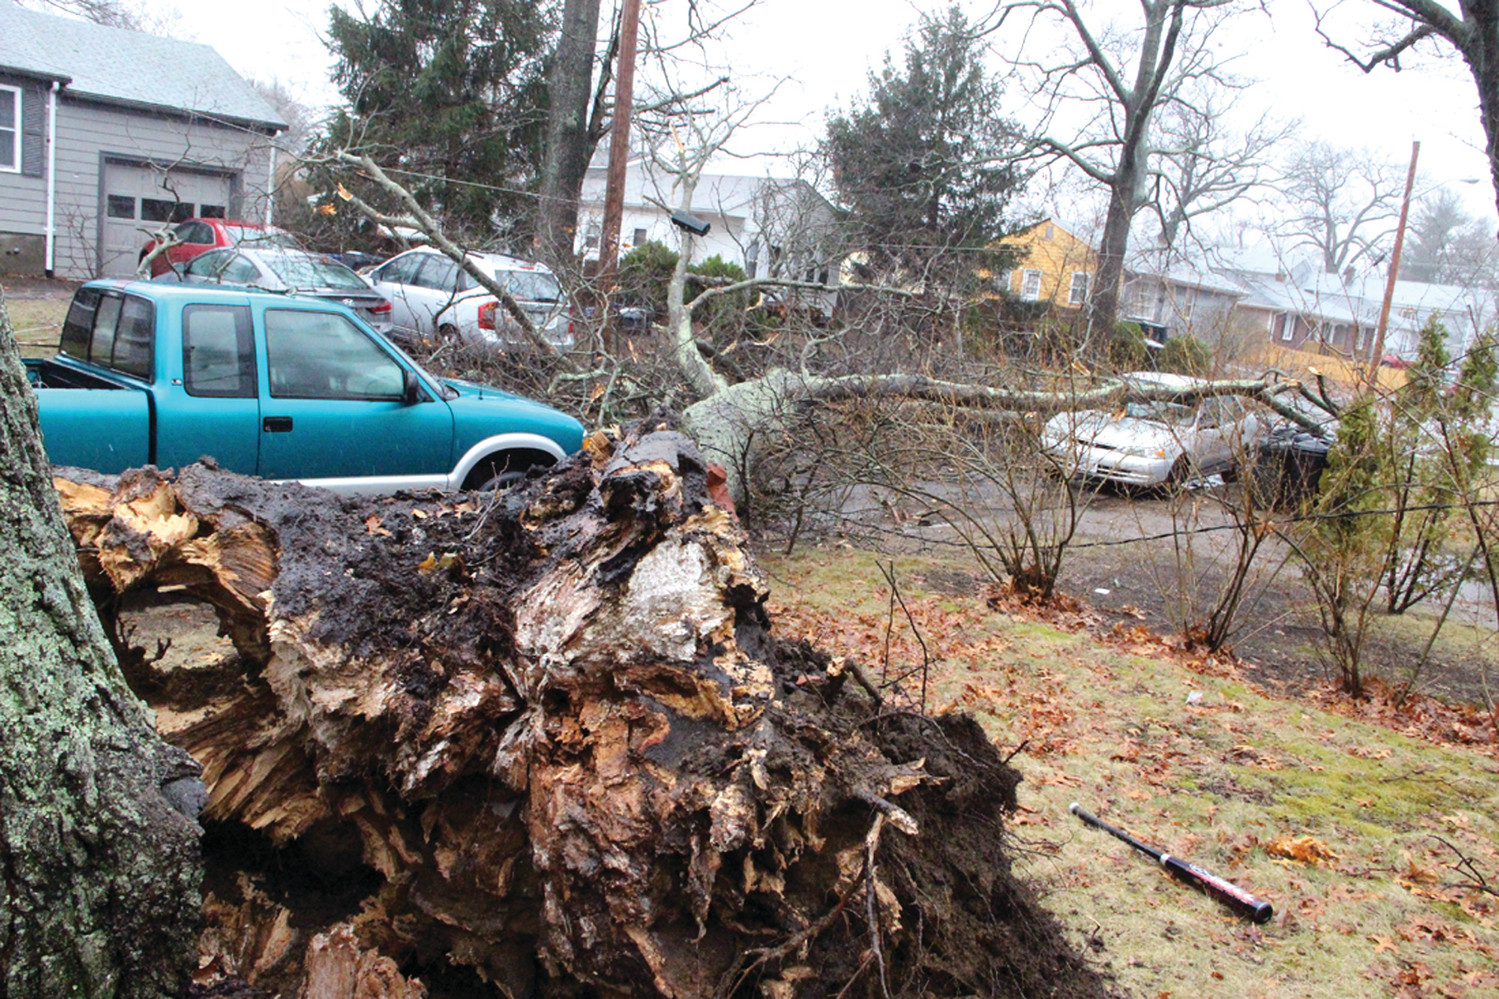 UPROOTED: A tree crashed to the ground Friday afternoon on Merle Street, damaging a parked car and, fortunately, avoiding serious damage to homes.